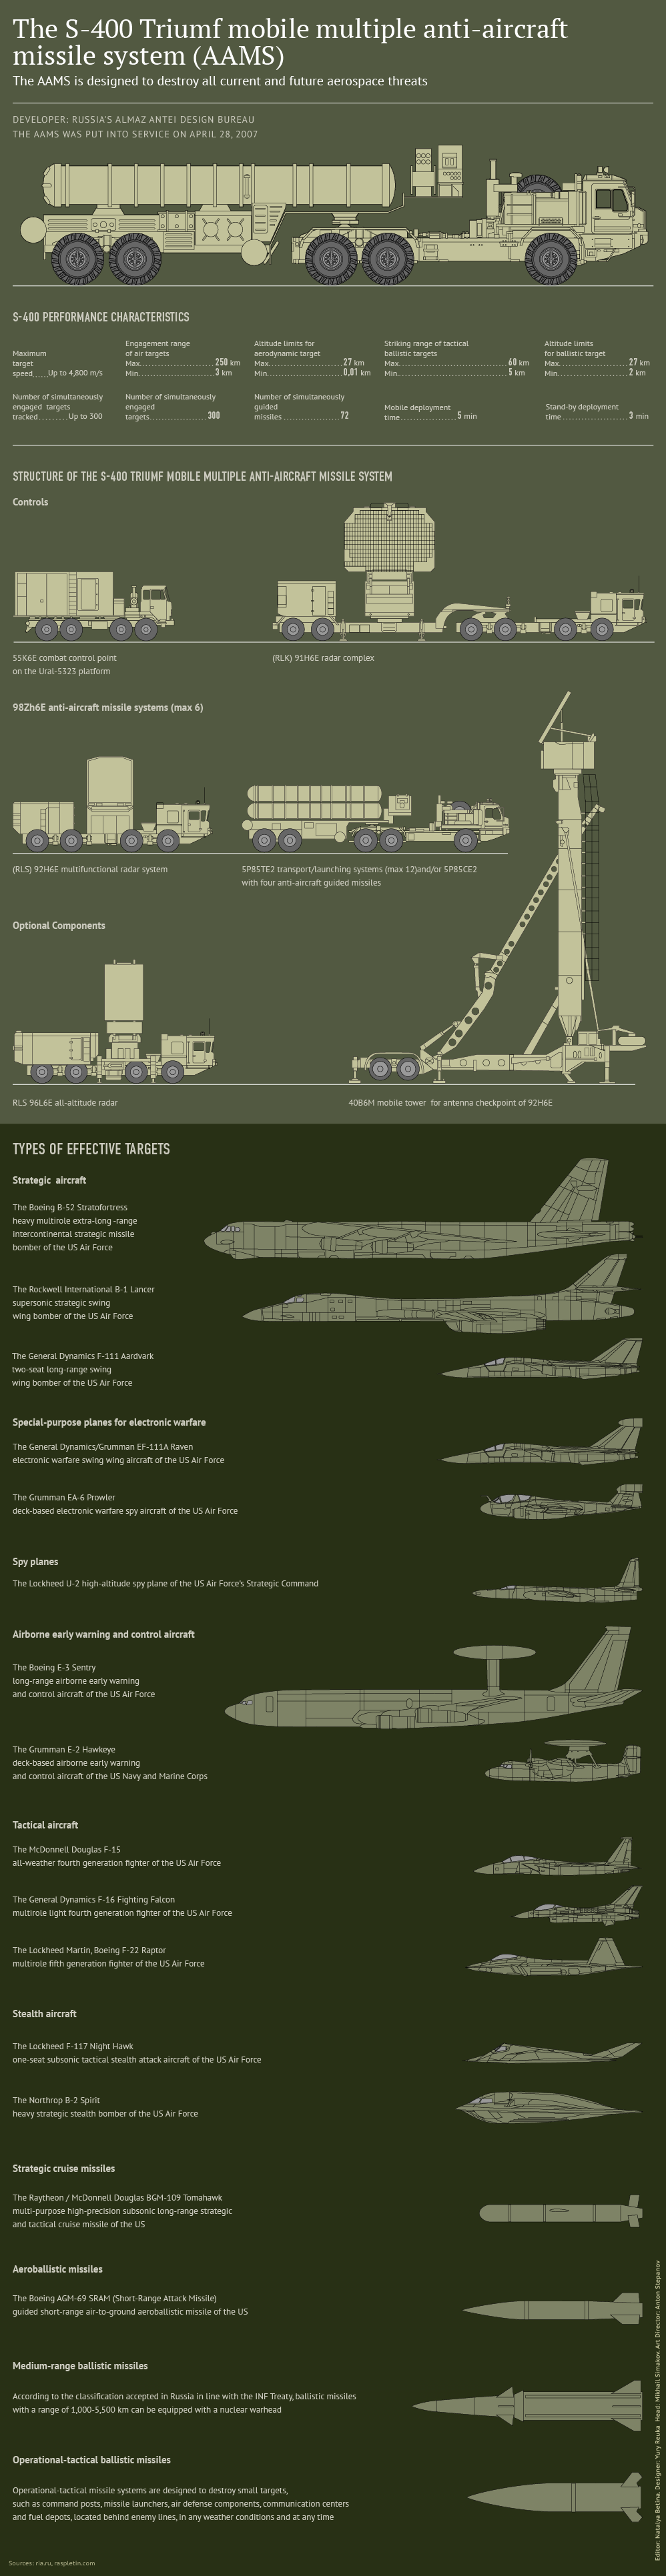 The S-400 Triumf Mobile Multiple Anti-Aircraft Missile System (AAMS)